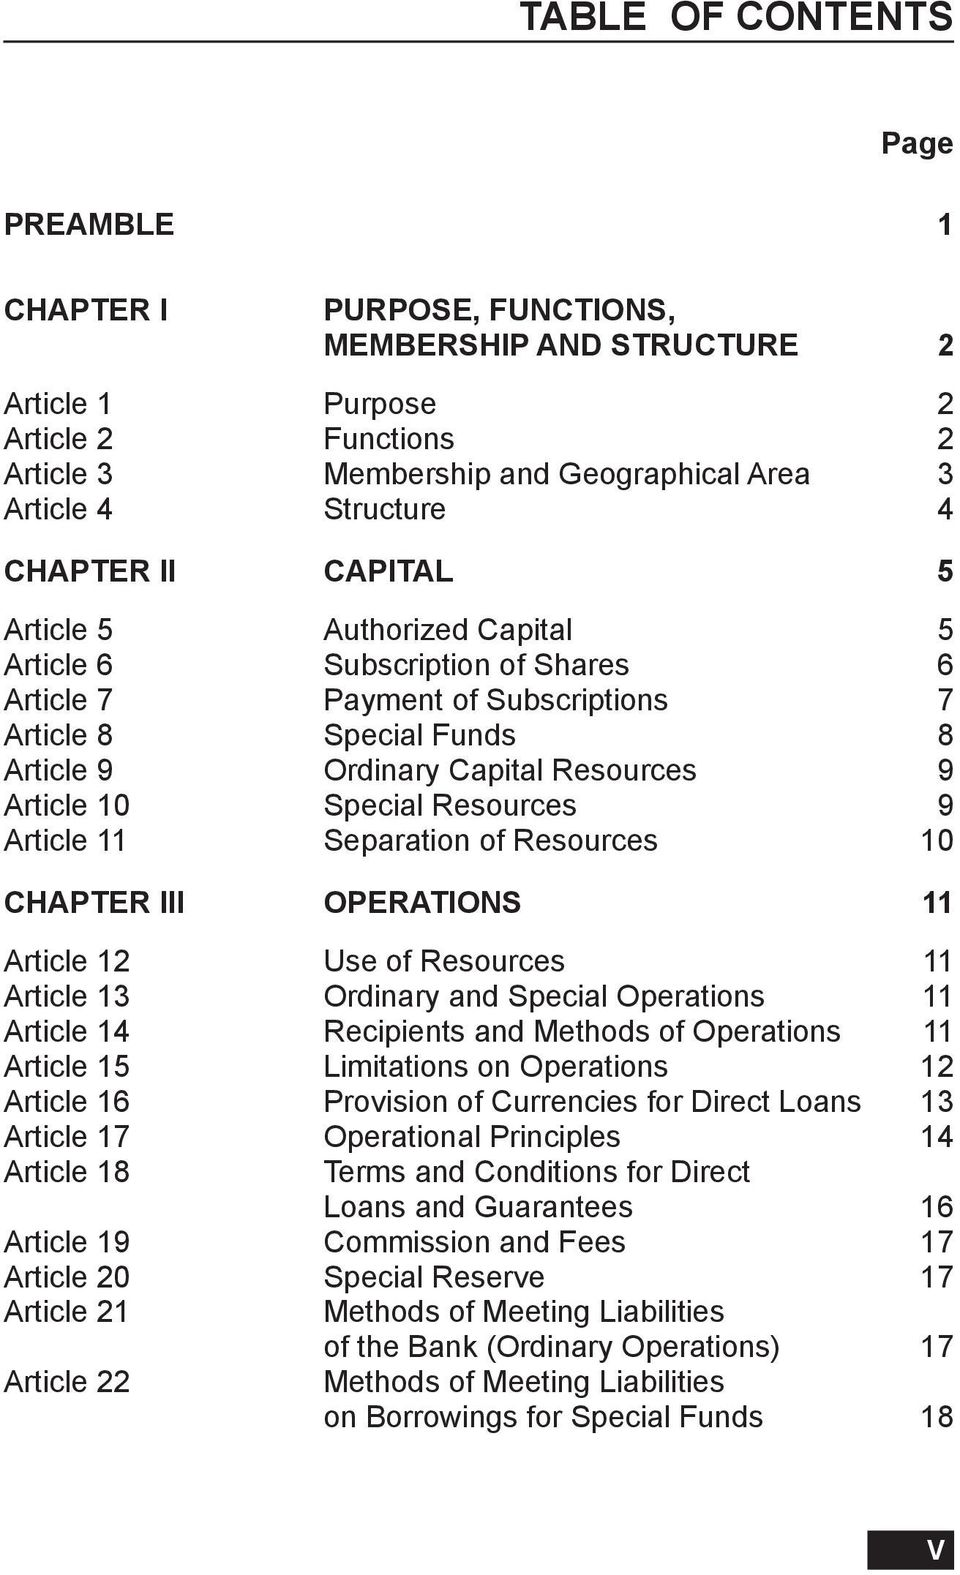 Special Resources 9 Article 11 Separation of Resources 10 CHAPTER III OPERATIONS 11 Article 12 Use of Resources 11 Article 13 Ordinary and Special Operations 11 Article 14 Recipients and Methods of